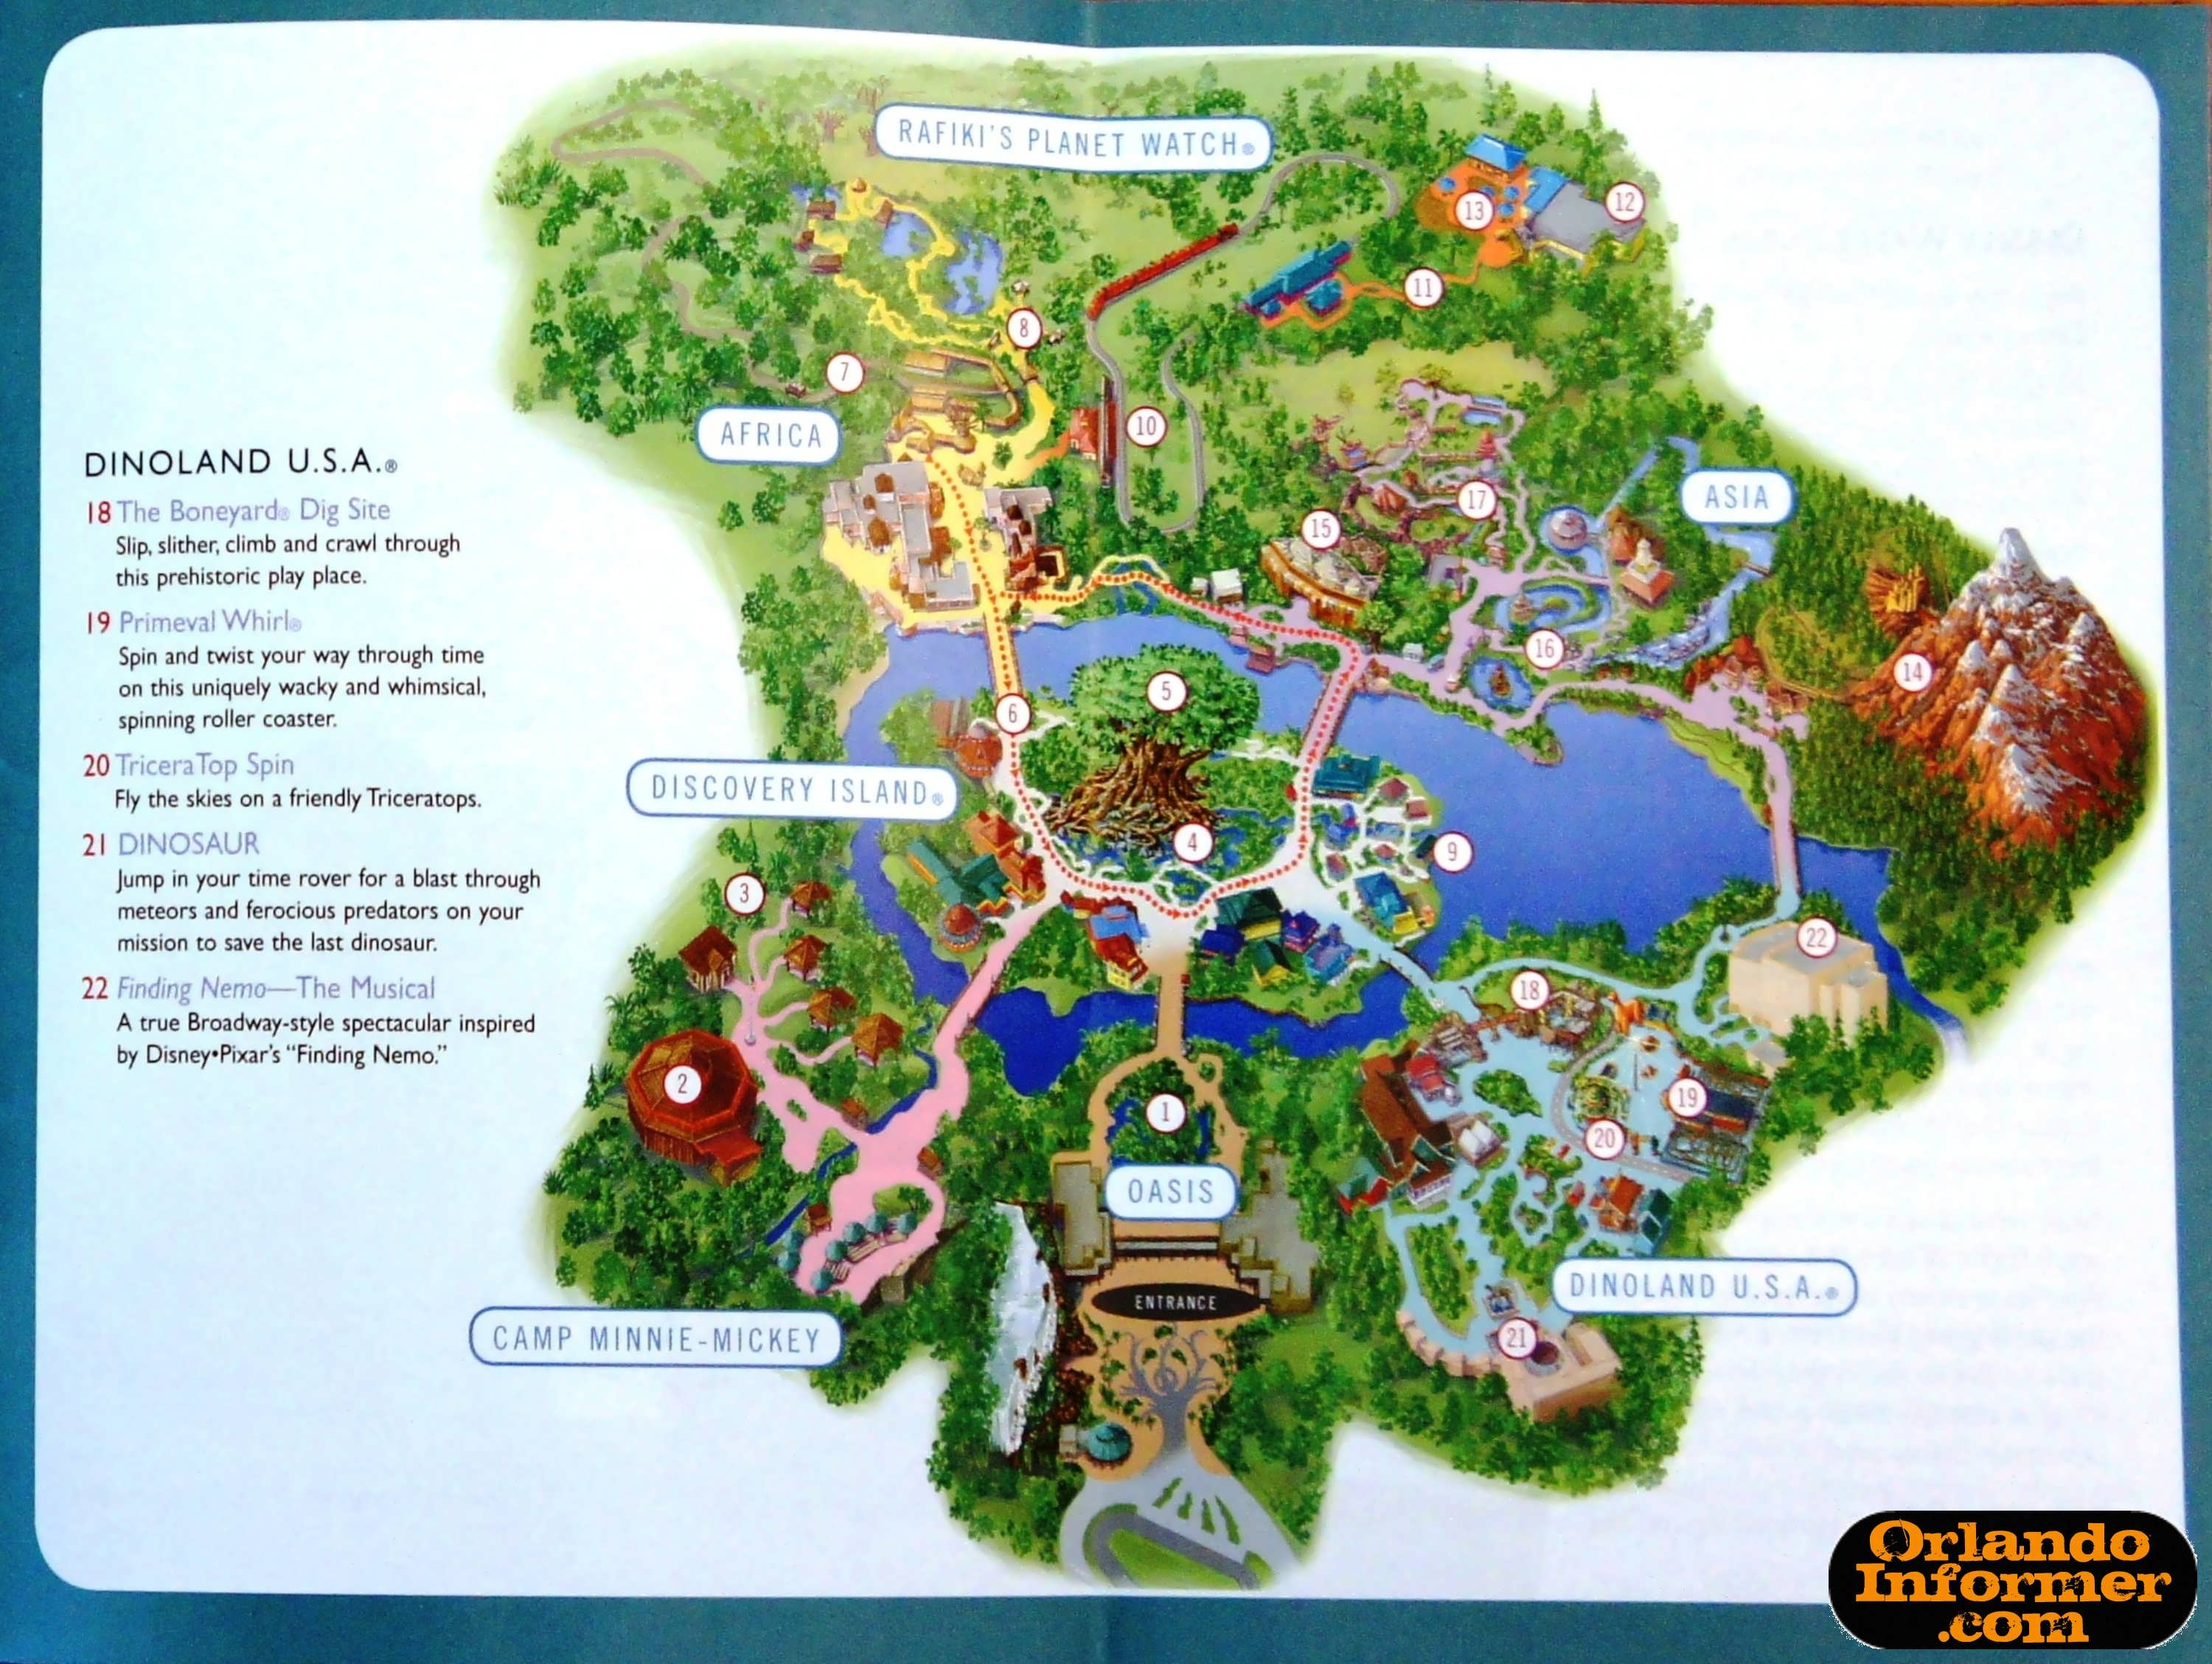 graphic about Printable Magic Kingdom Map titled 2011 Walt Disney Environment family vacation brochure: Make it possible for the recollections